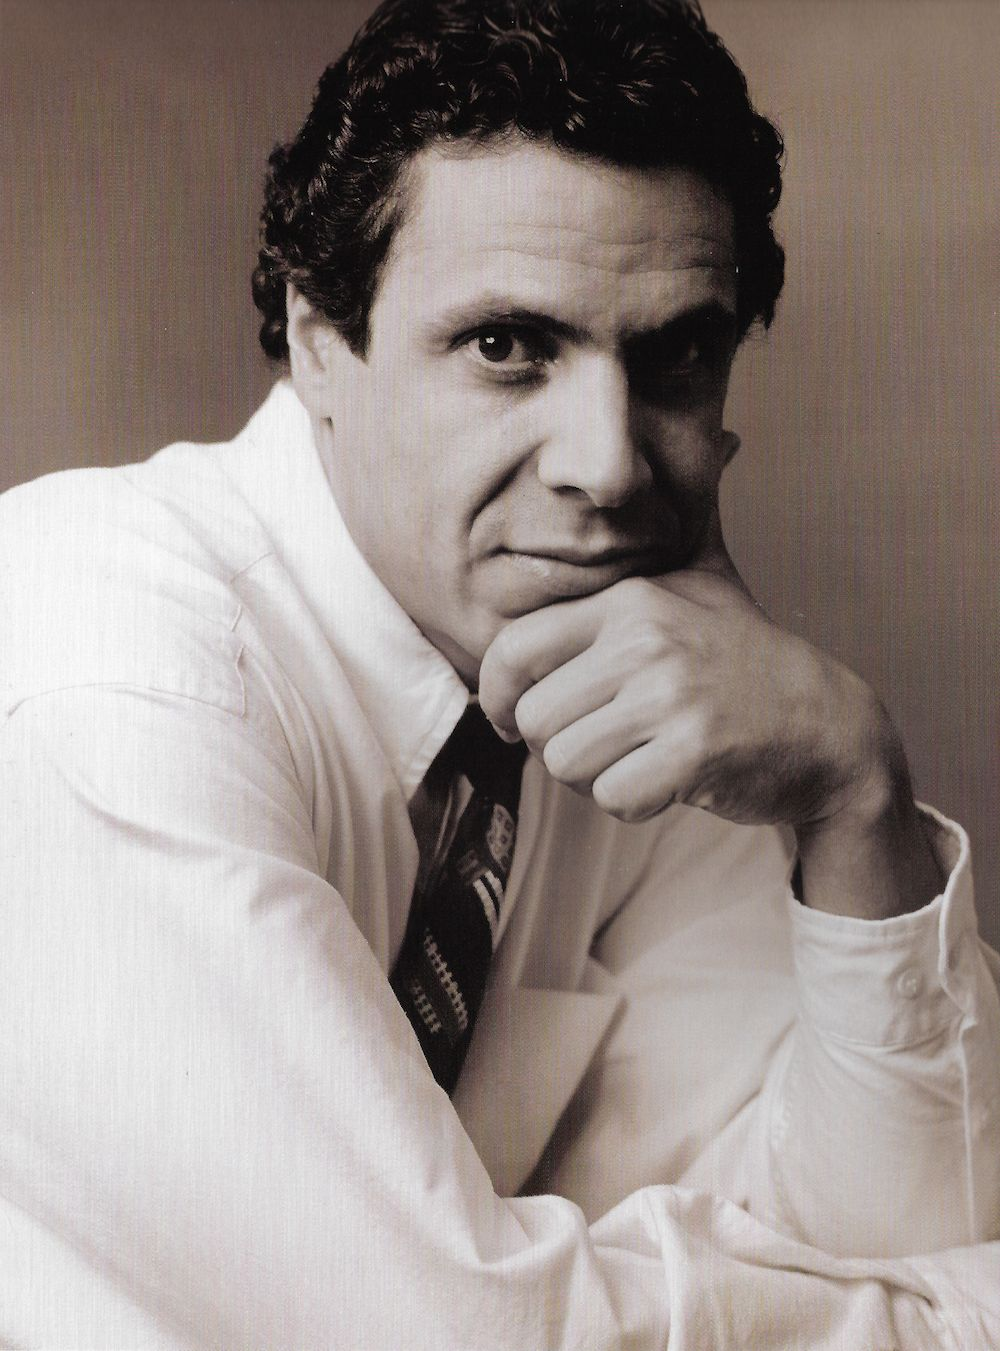 Andrew Cuomo Photographed By Annie Leibovitz In 1992 In 2020 Andrew Cuomo Annie Leibovitz Historical Figures